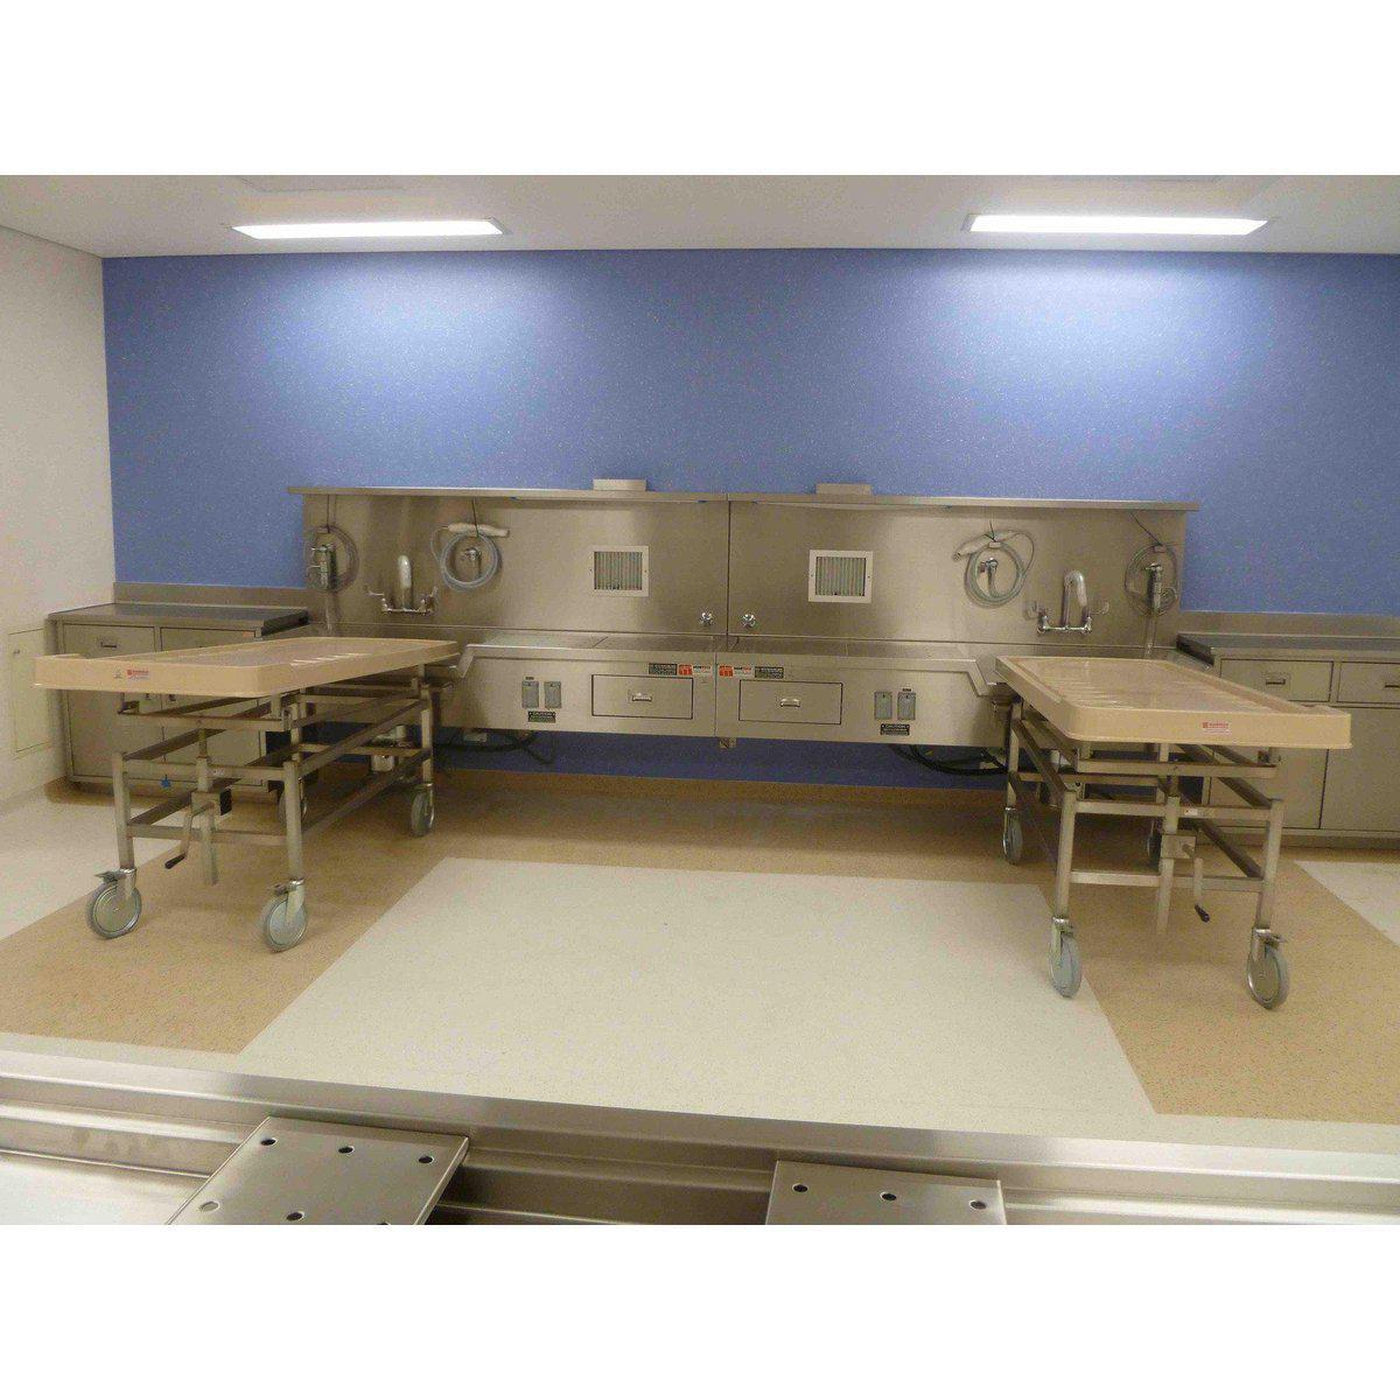 Ventilated Embalming Station Mortech Manufacturing Company Inc